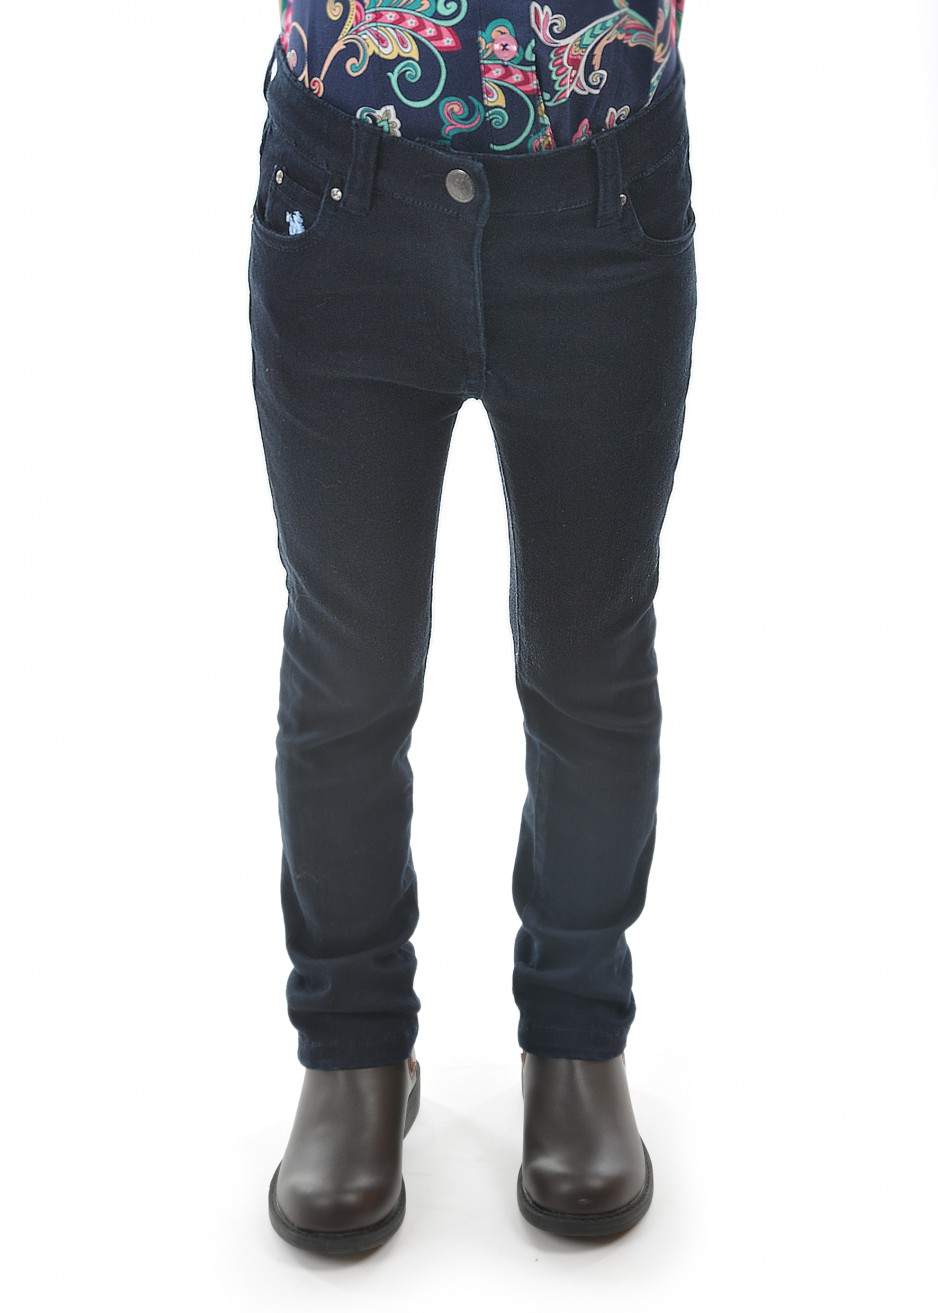 GIRLS JENOLAN SLIM LEG JEAN